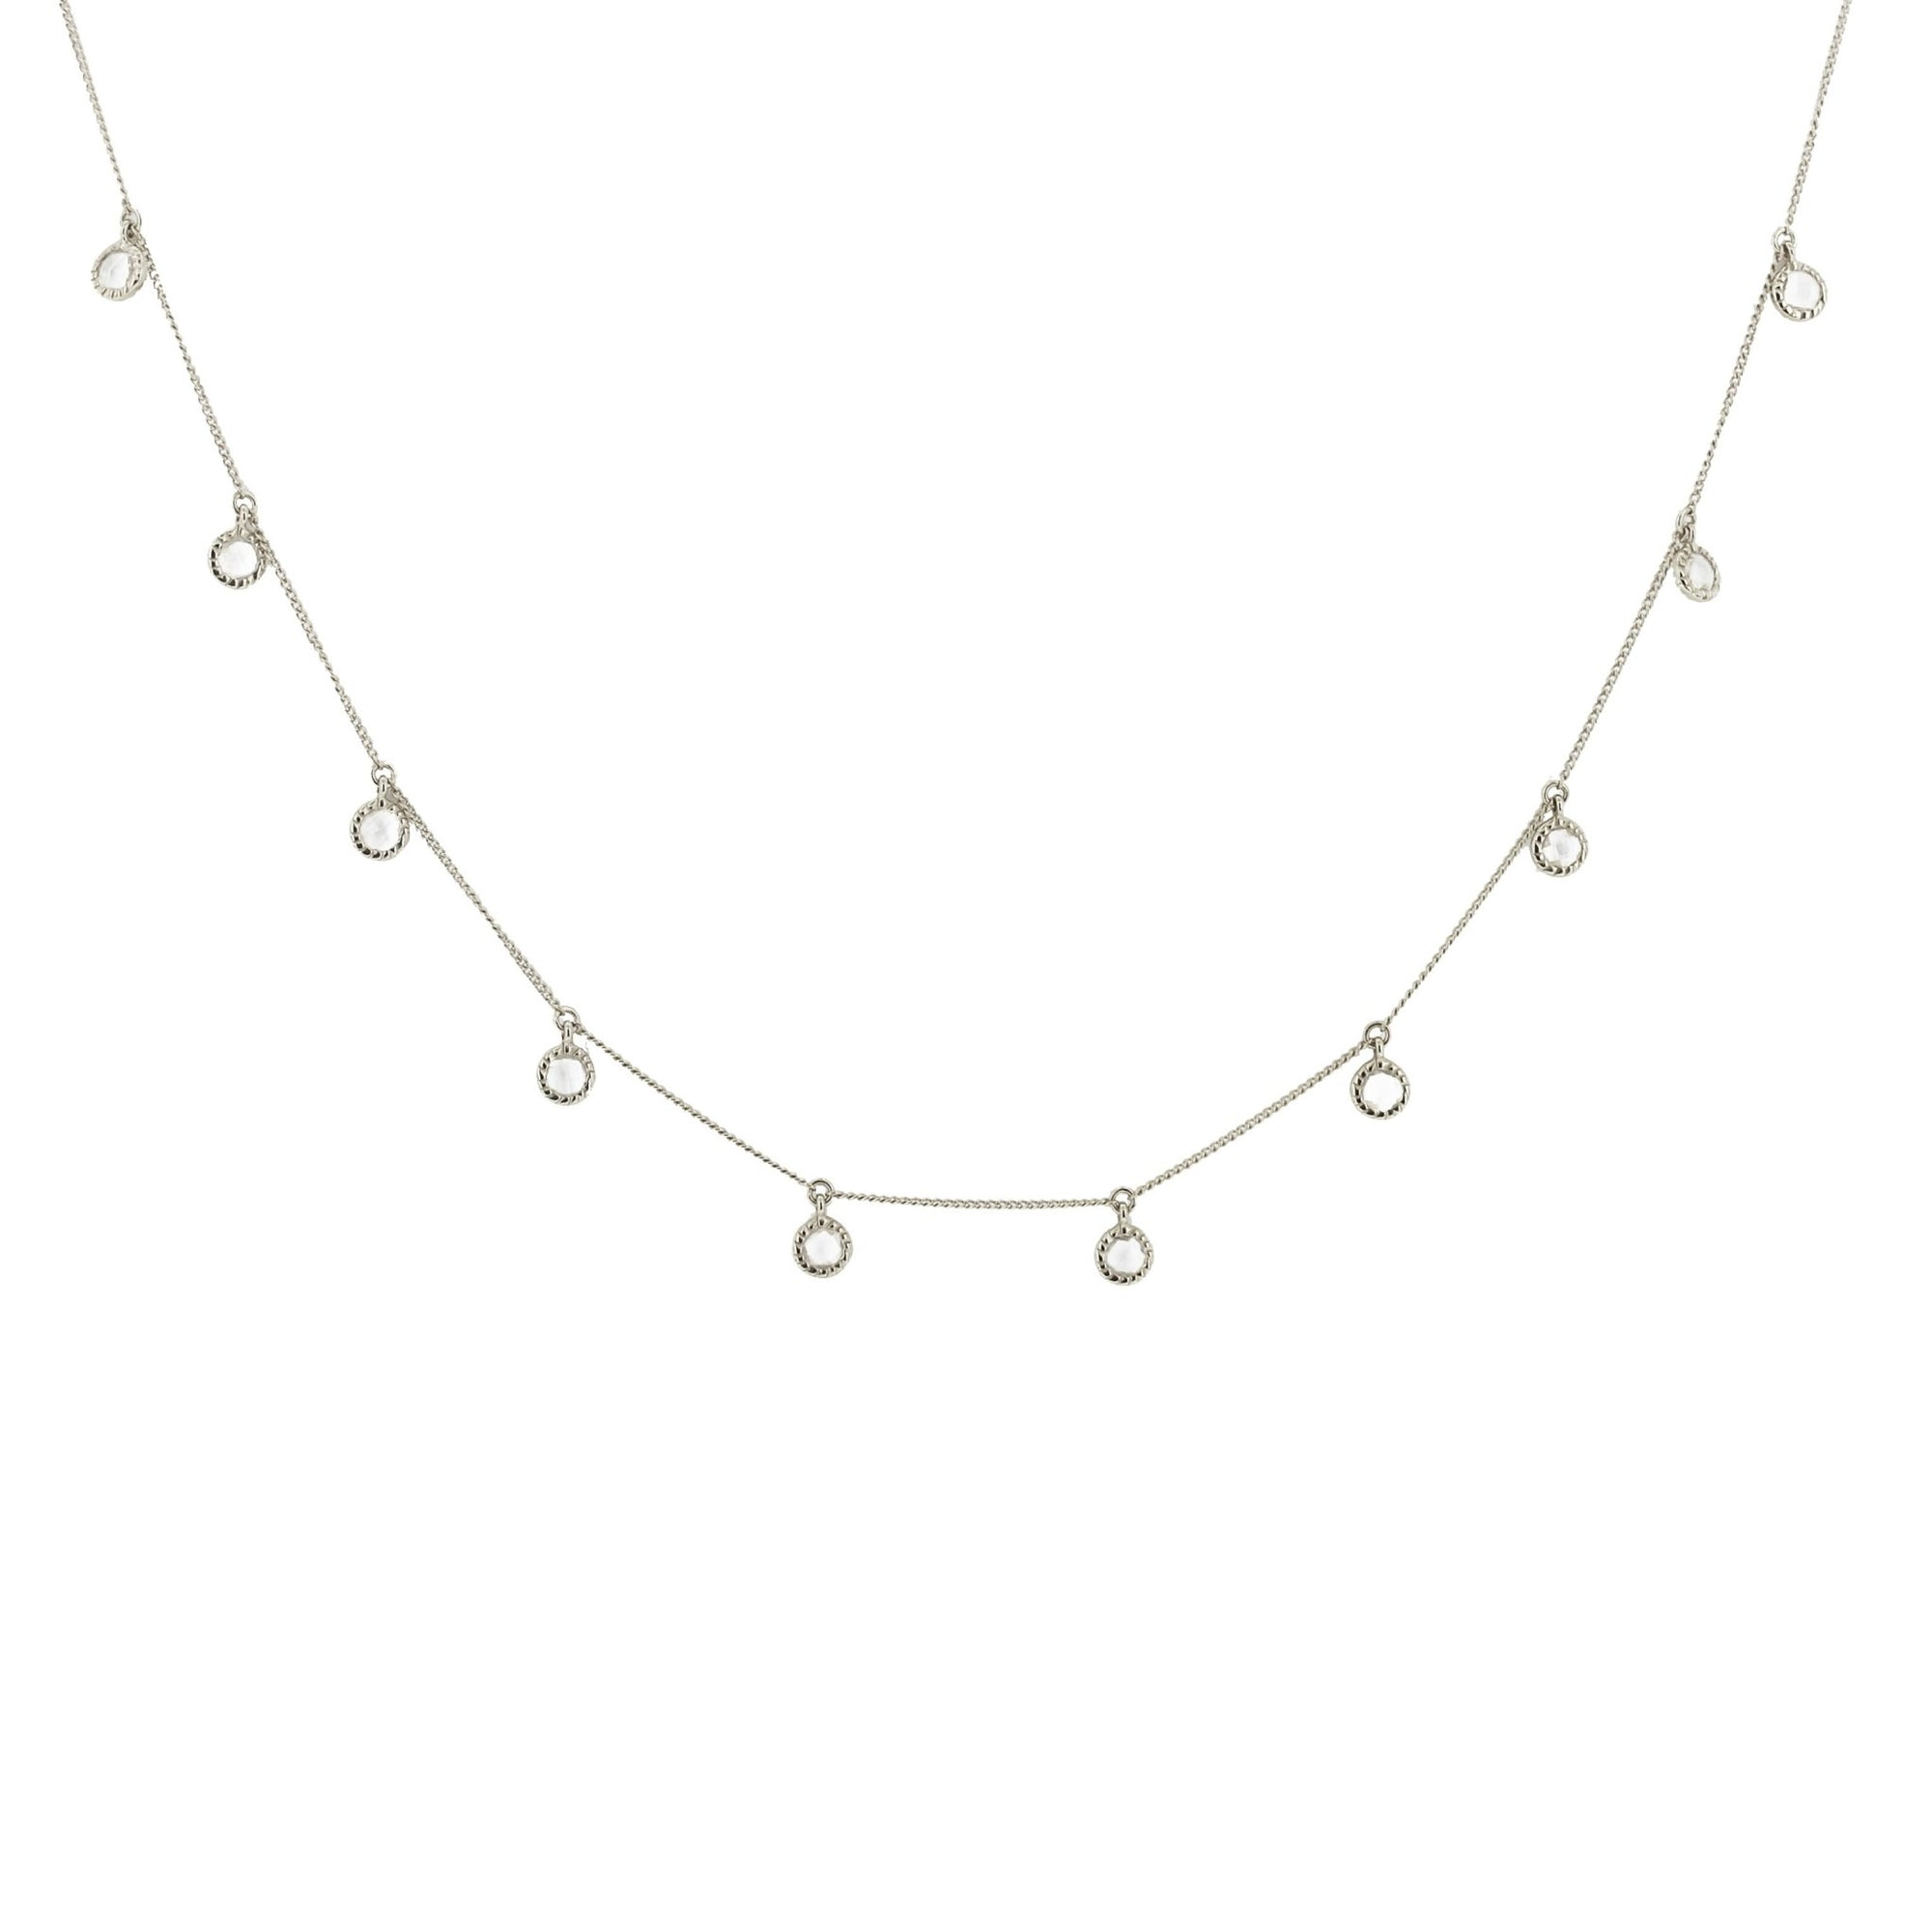 DAINTY LEGACY COLLAR NECKLACE - WHITE TOPAZ & SILVER - SO PRETTY CARA COTTER